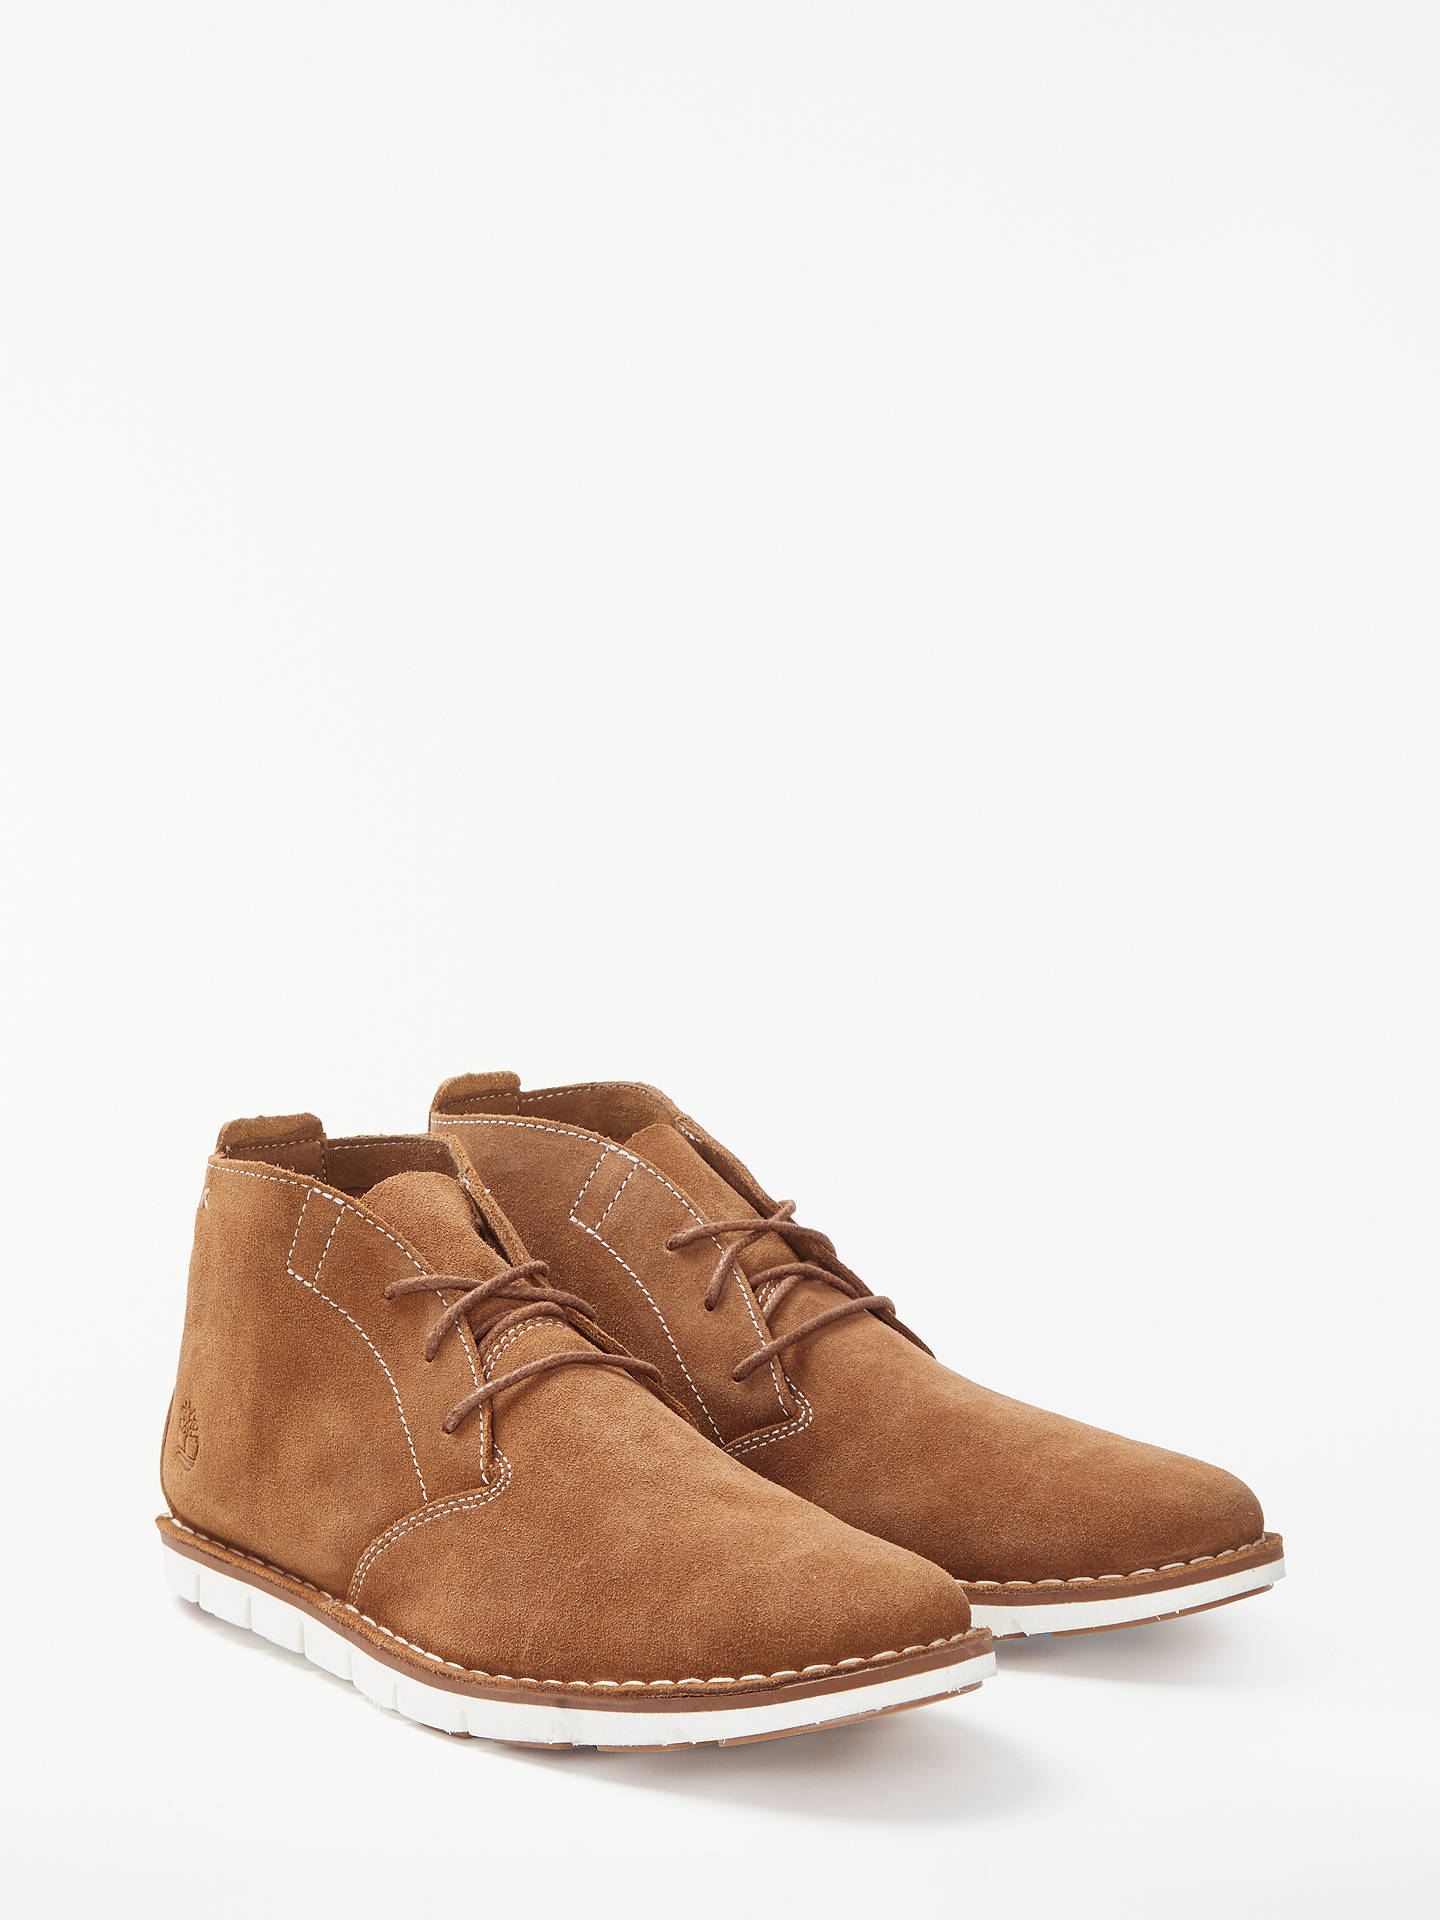 9f5b656196e Timberland Tidelands Suede Desert Boots, Brown at John Lewis & Partners